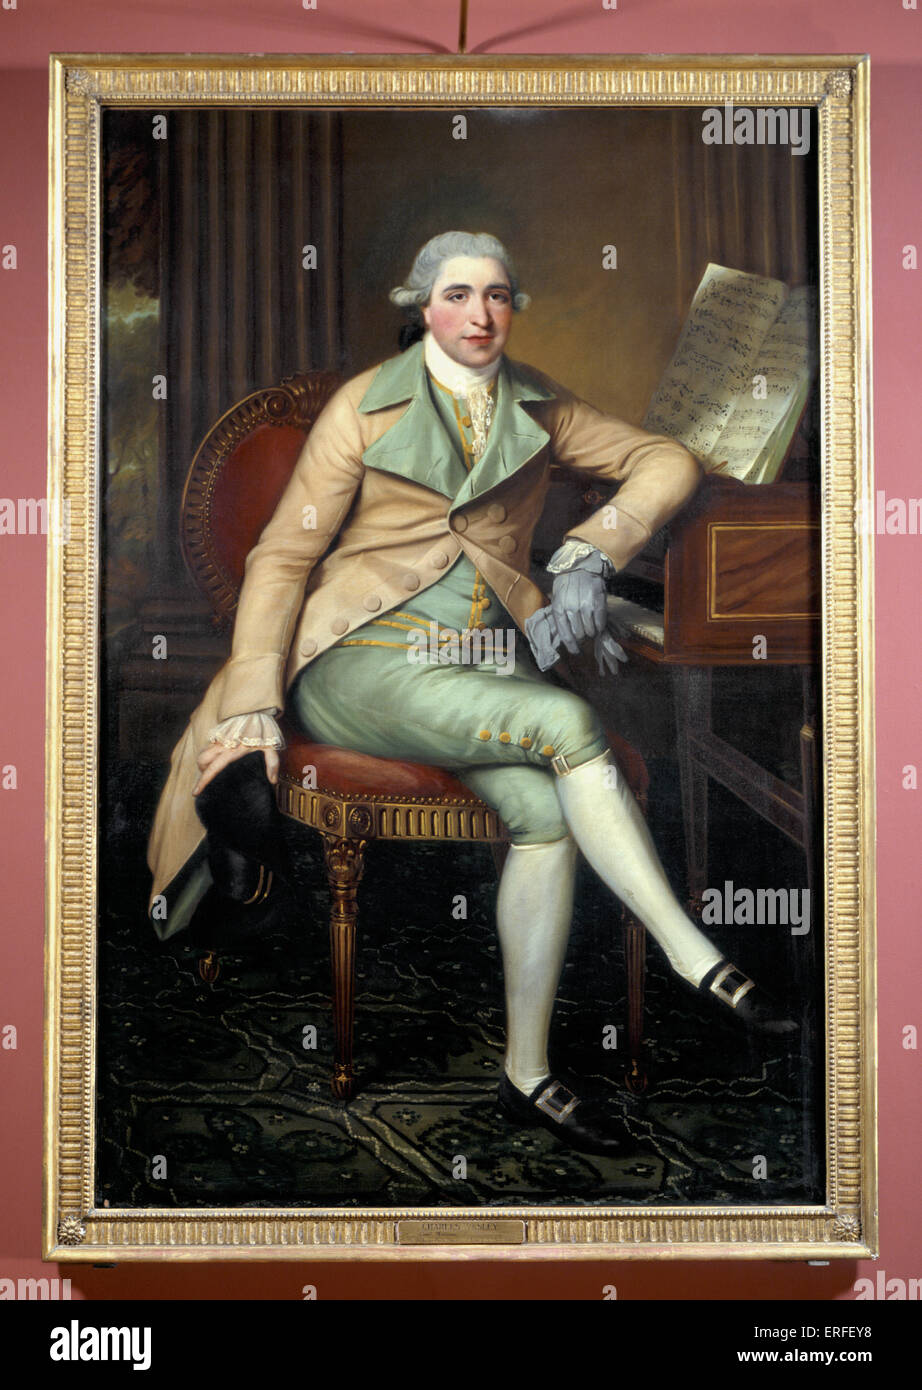 Charles Wesley by John Russell. English organist and harpsichord player, 1757-1834.  Oil on canvas. - Stock Image